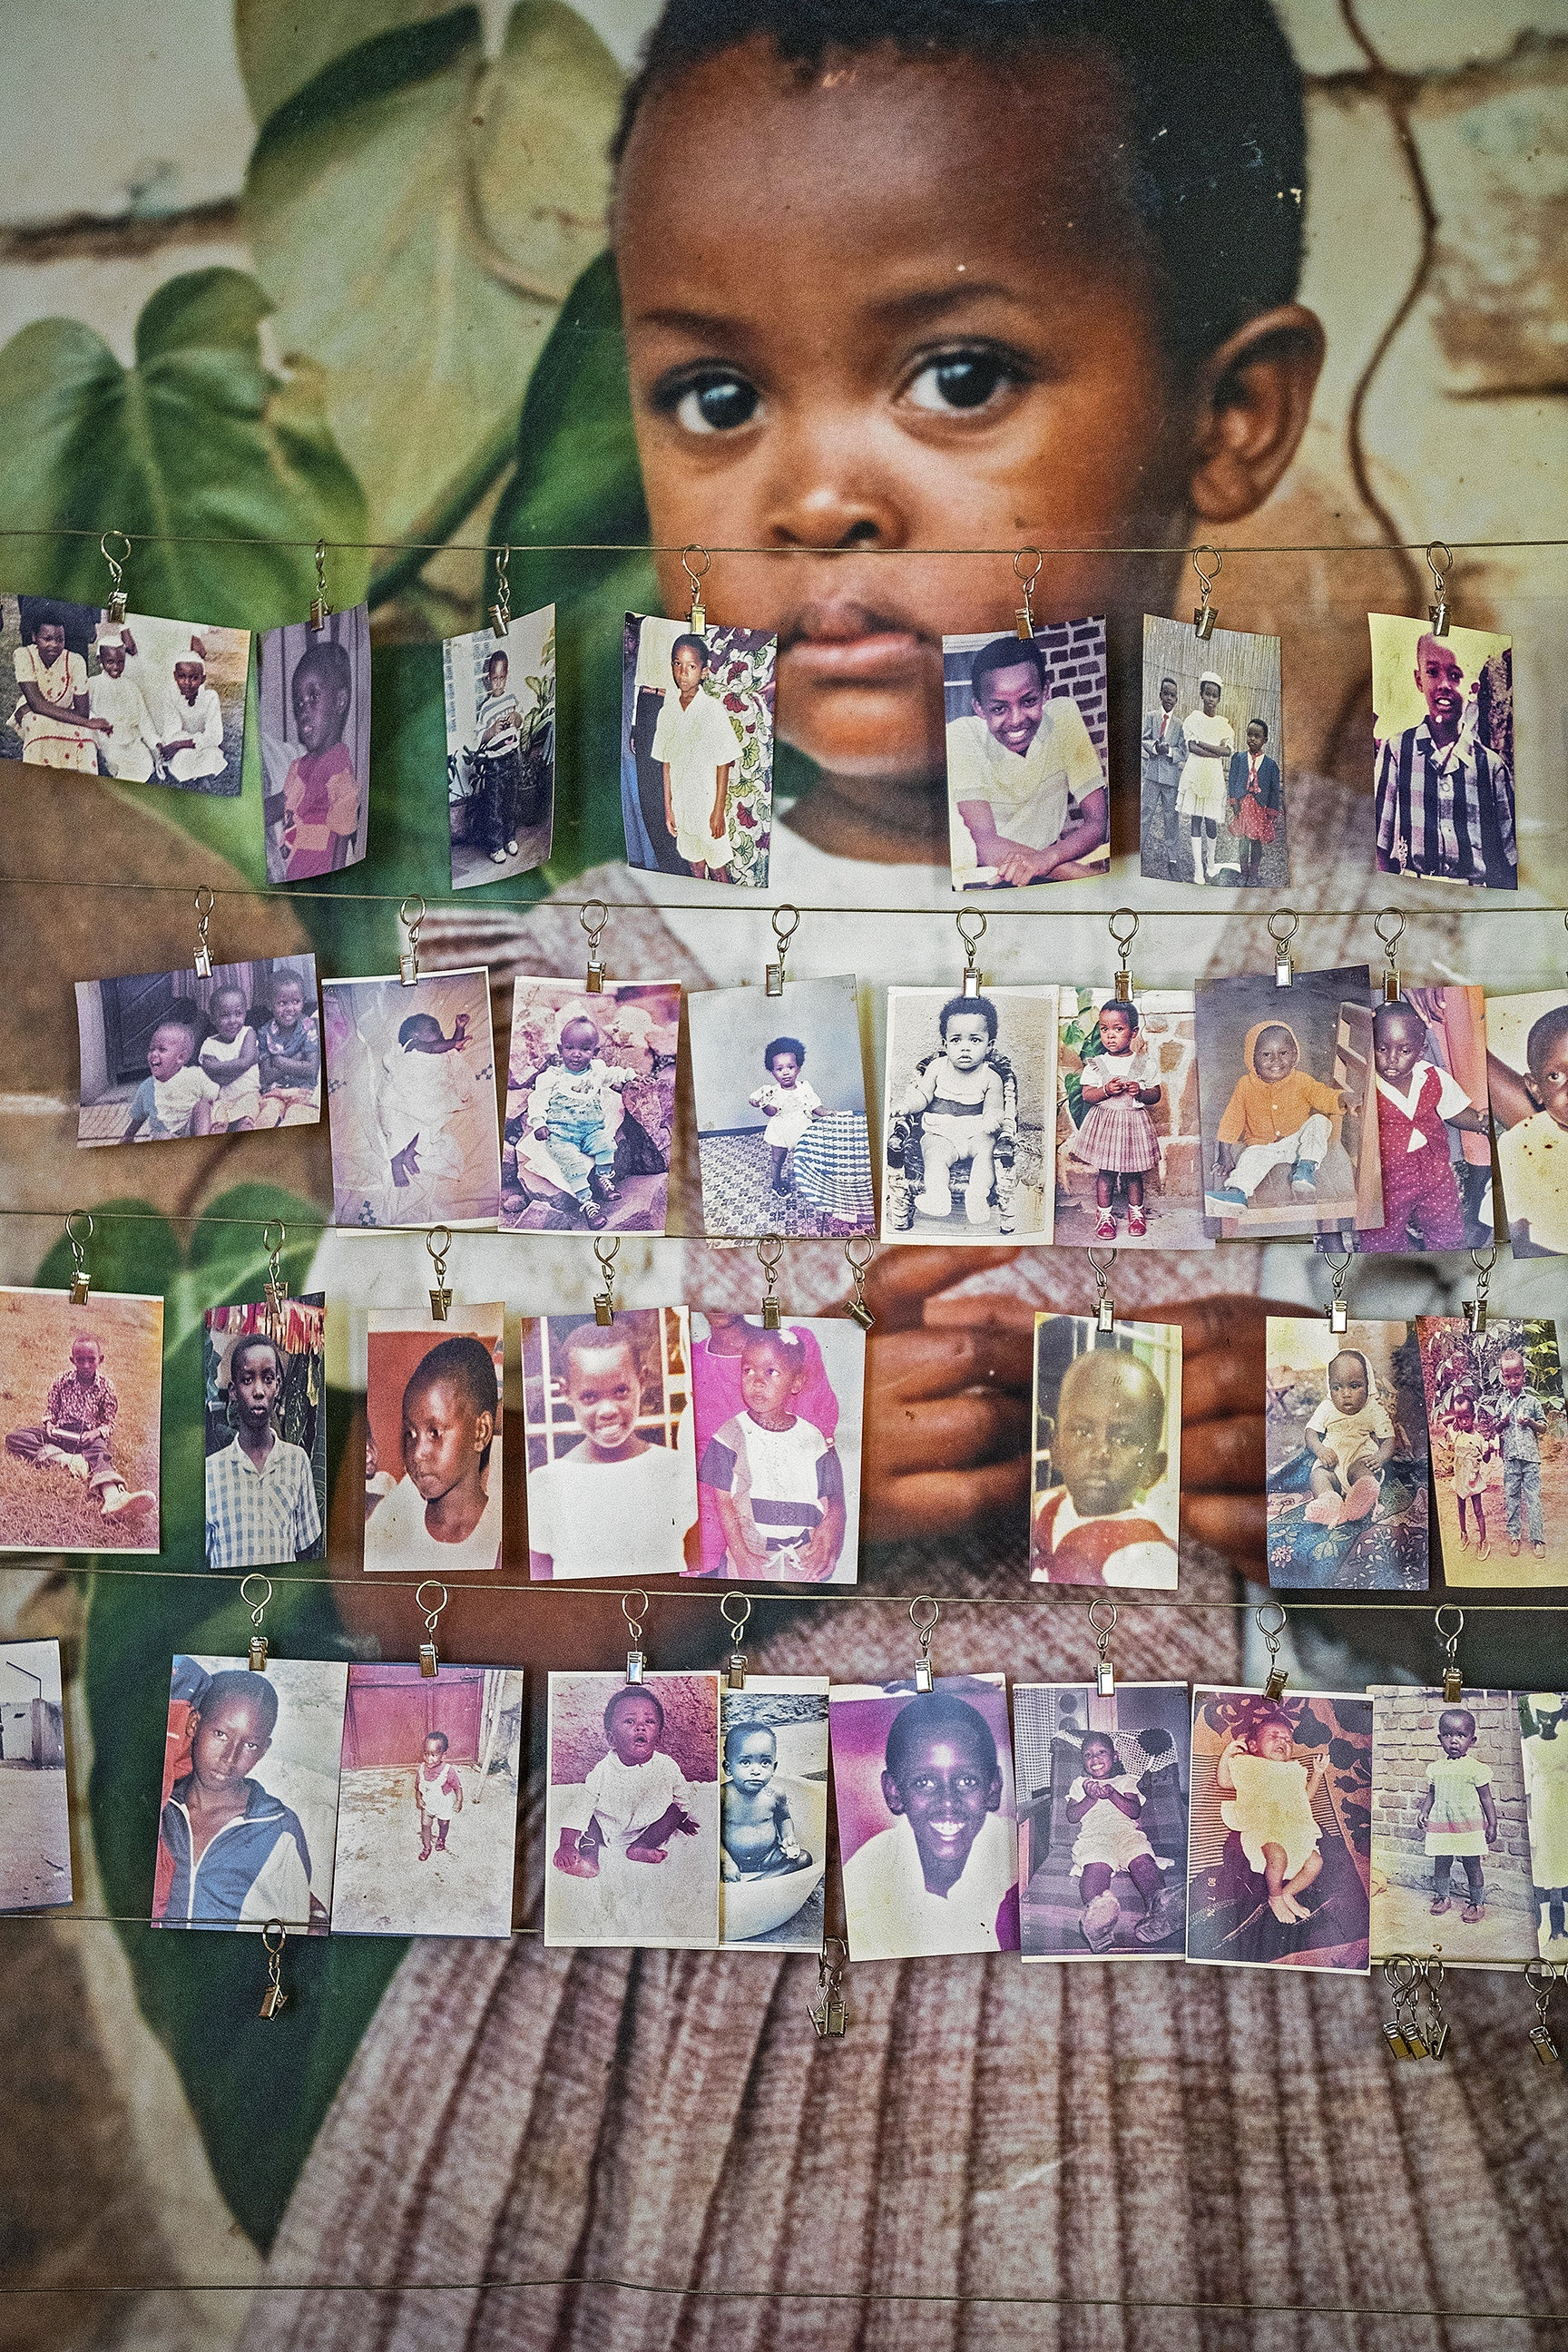 Photos of victims in the Kigali Genocide Memorial